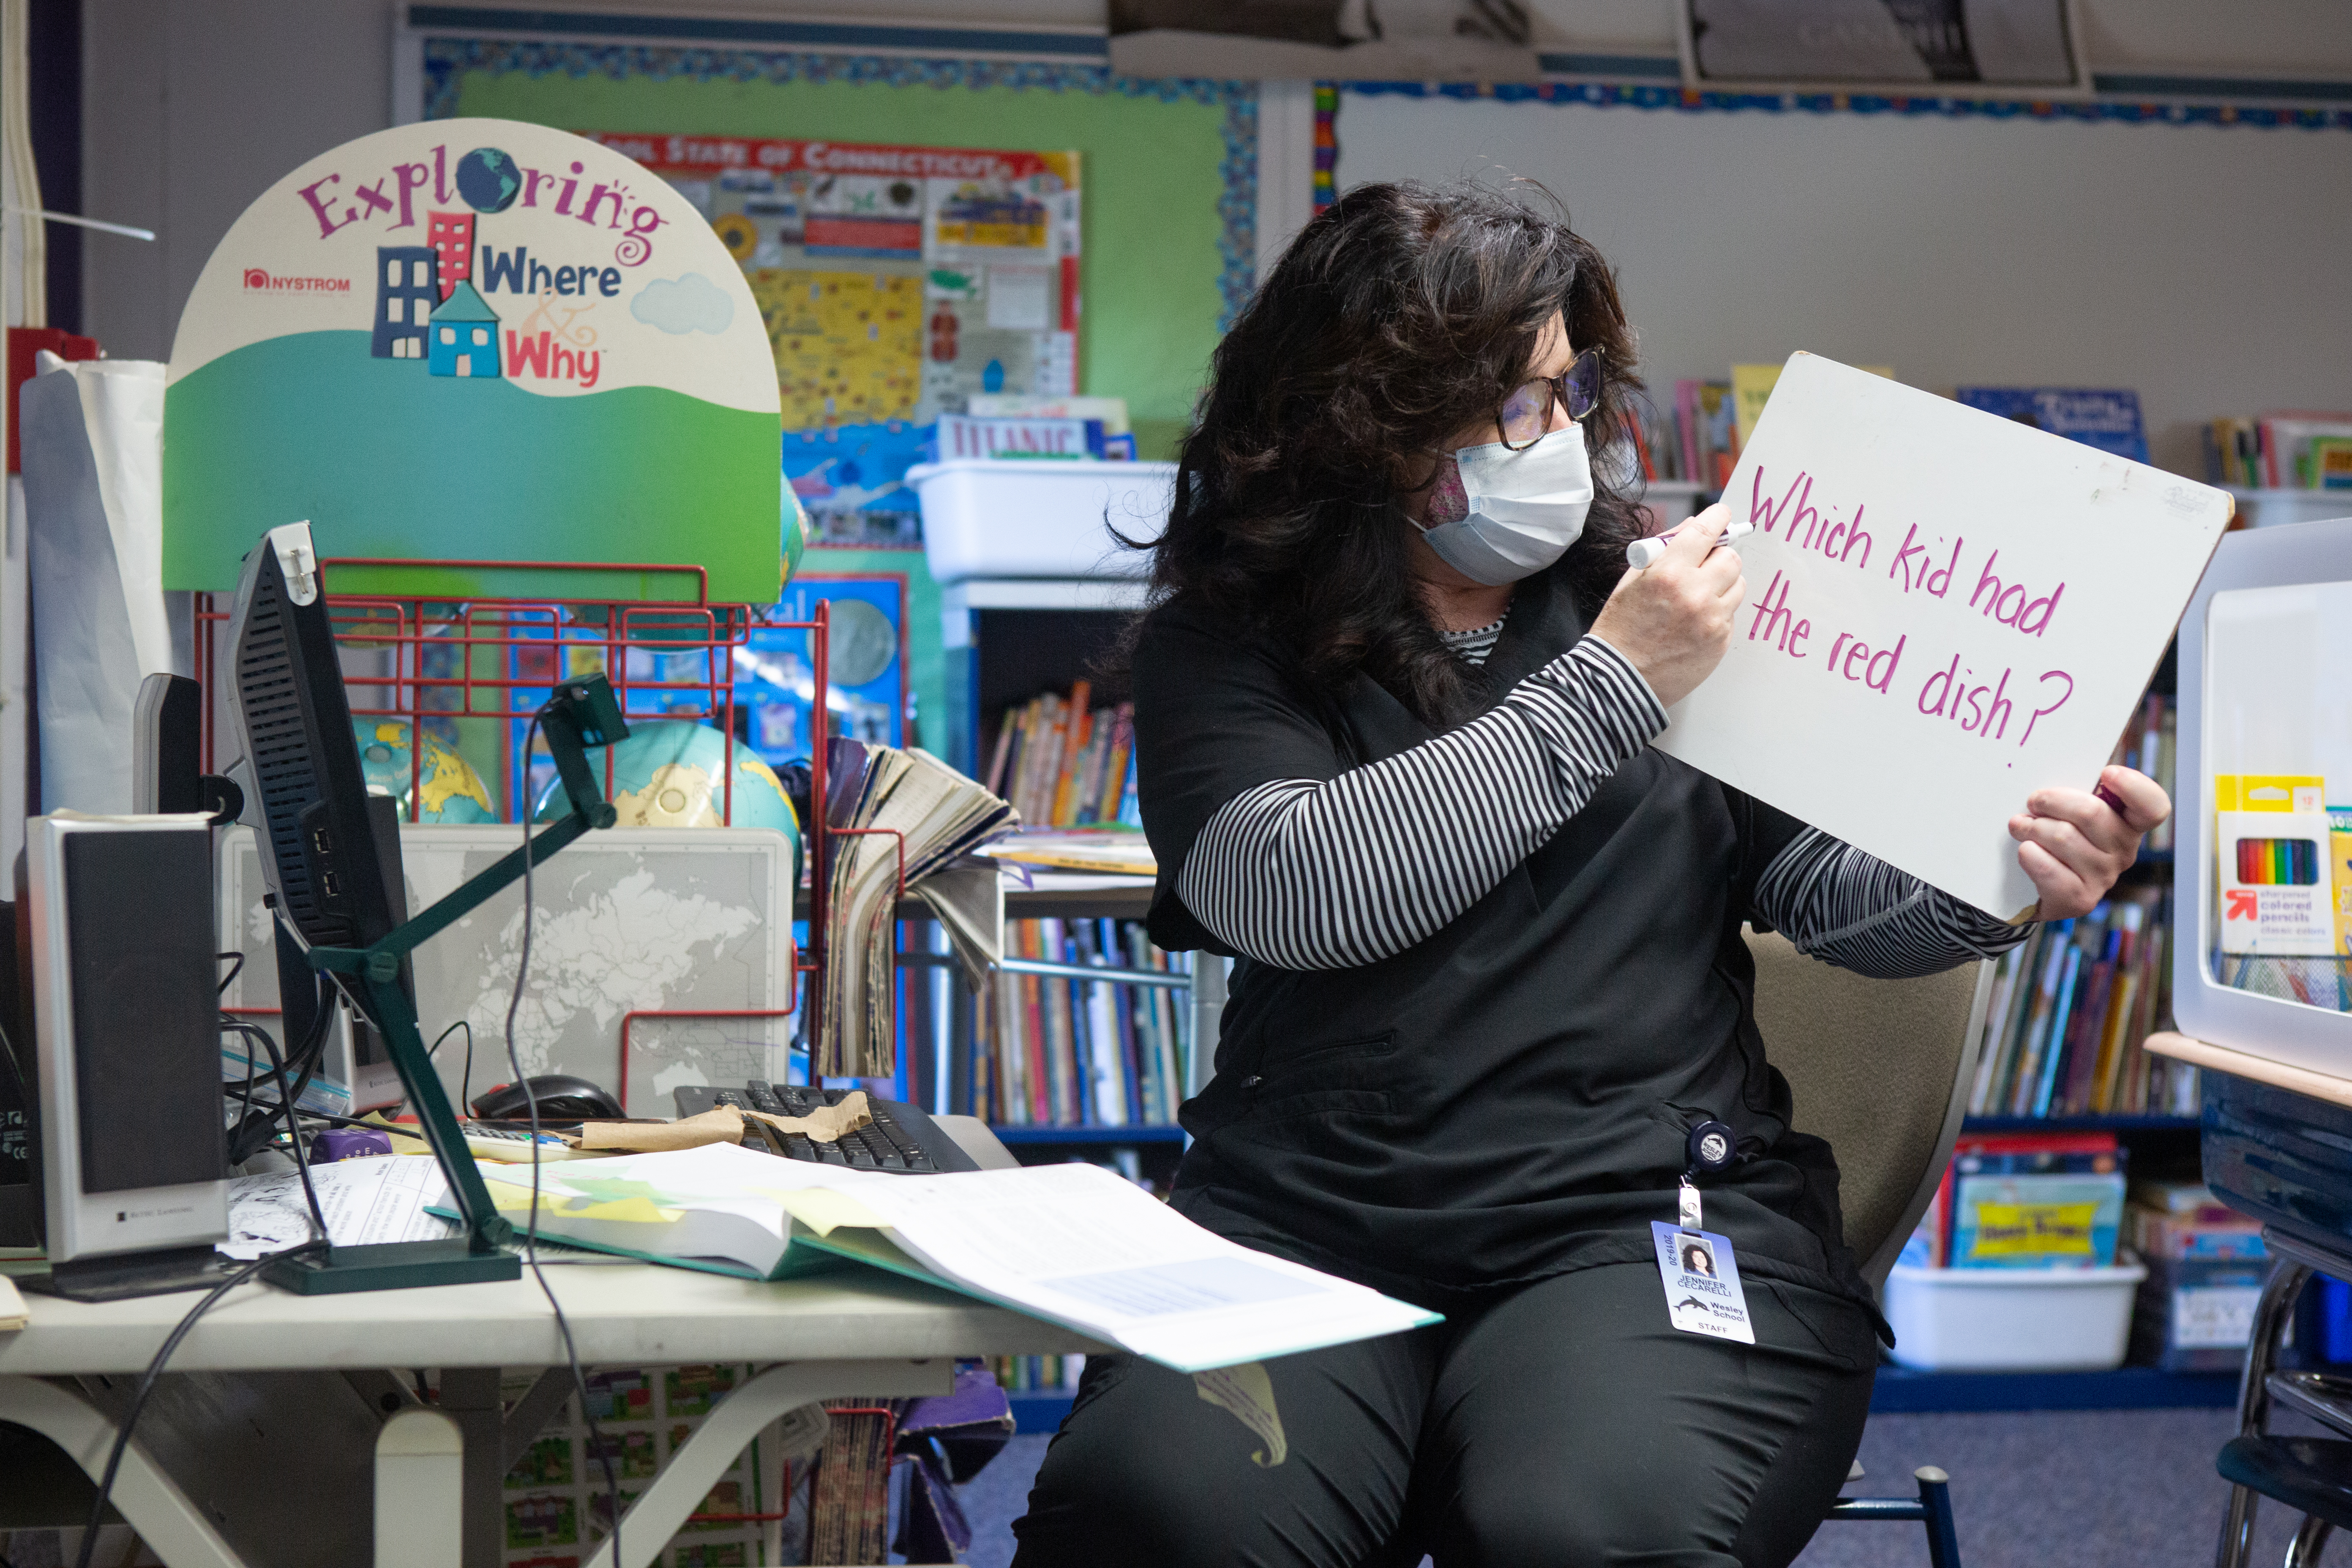 Second grade teacher Mrs. Cecarelli uses a white board to teach both her in-class and online students at Wesley Elementary School in Middletown, CT, October 5, 2020.